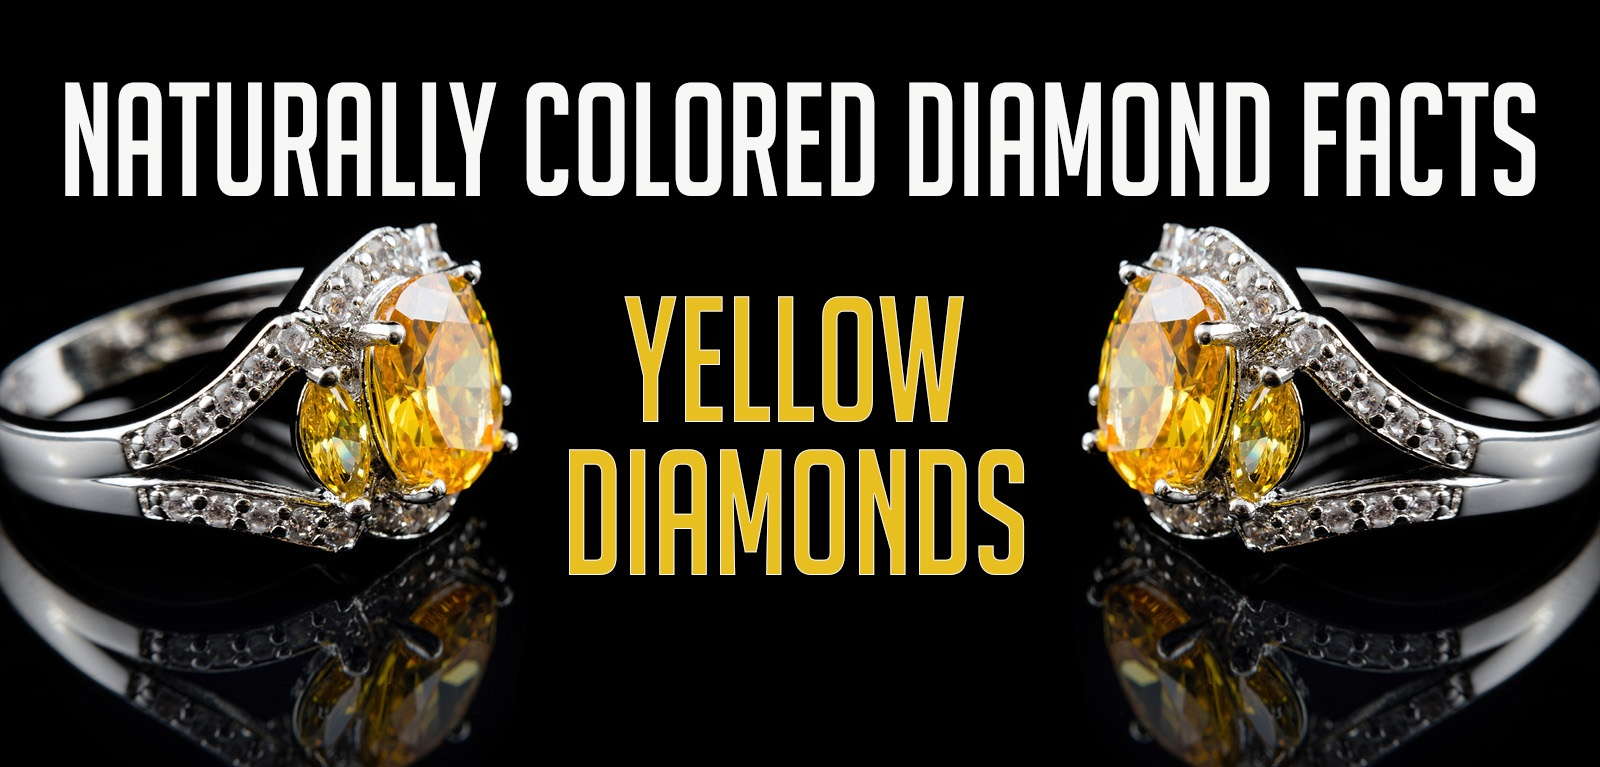 naturally colored diamond facts yellow diamonds.jpg